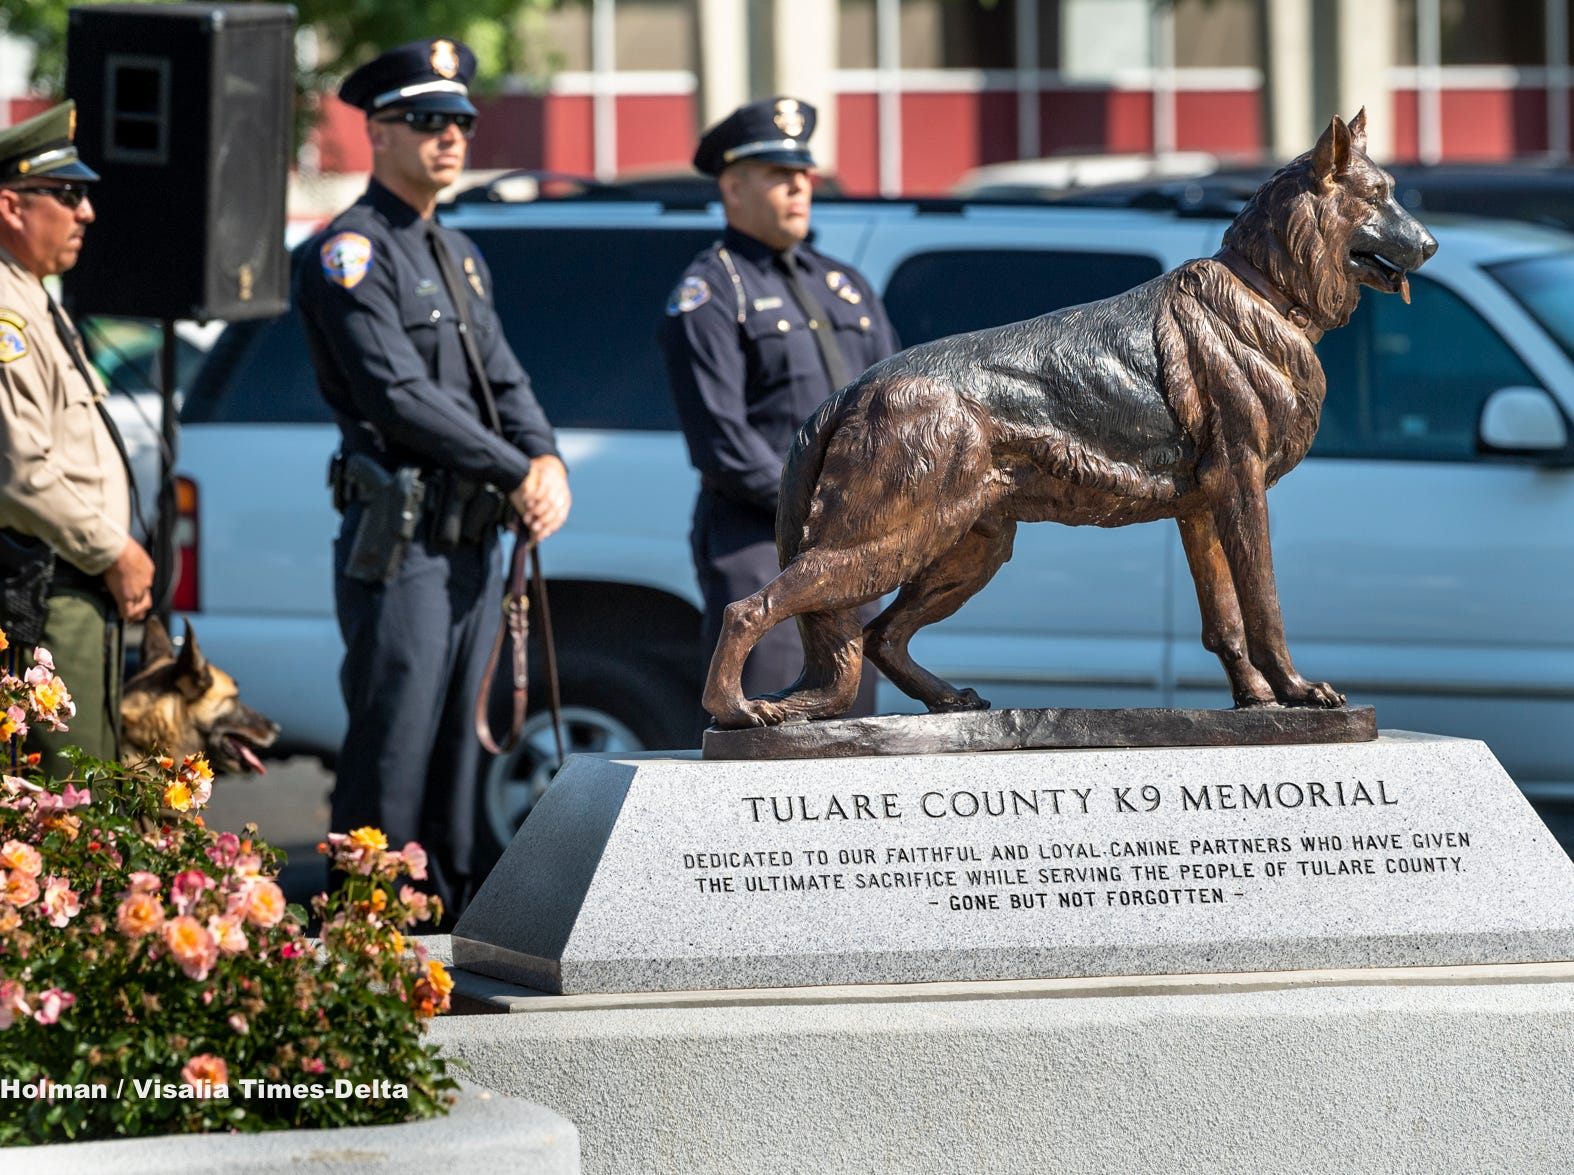 Tulare County Peace Officer Memorial Ceremony now includes a K-9 memorial for Tulare police dog Bane who was killed in the line of duty late in 2018.